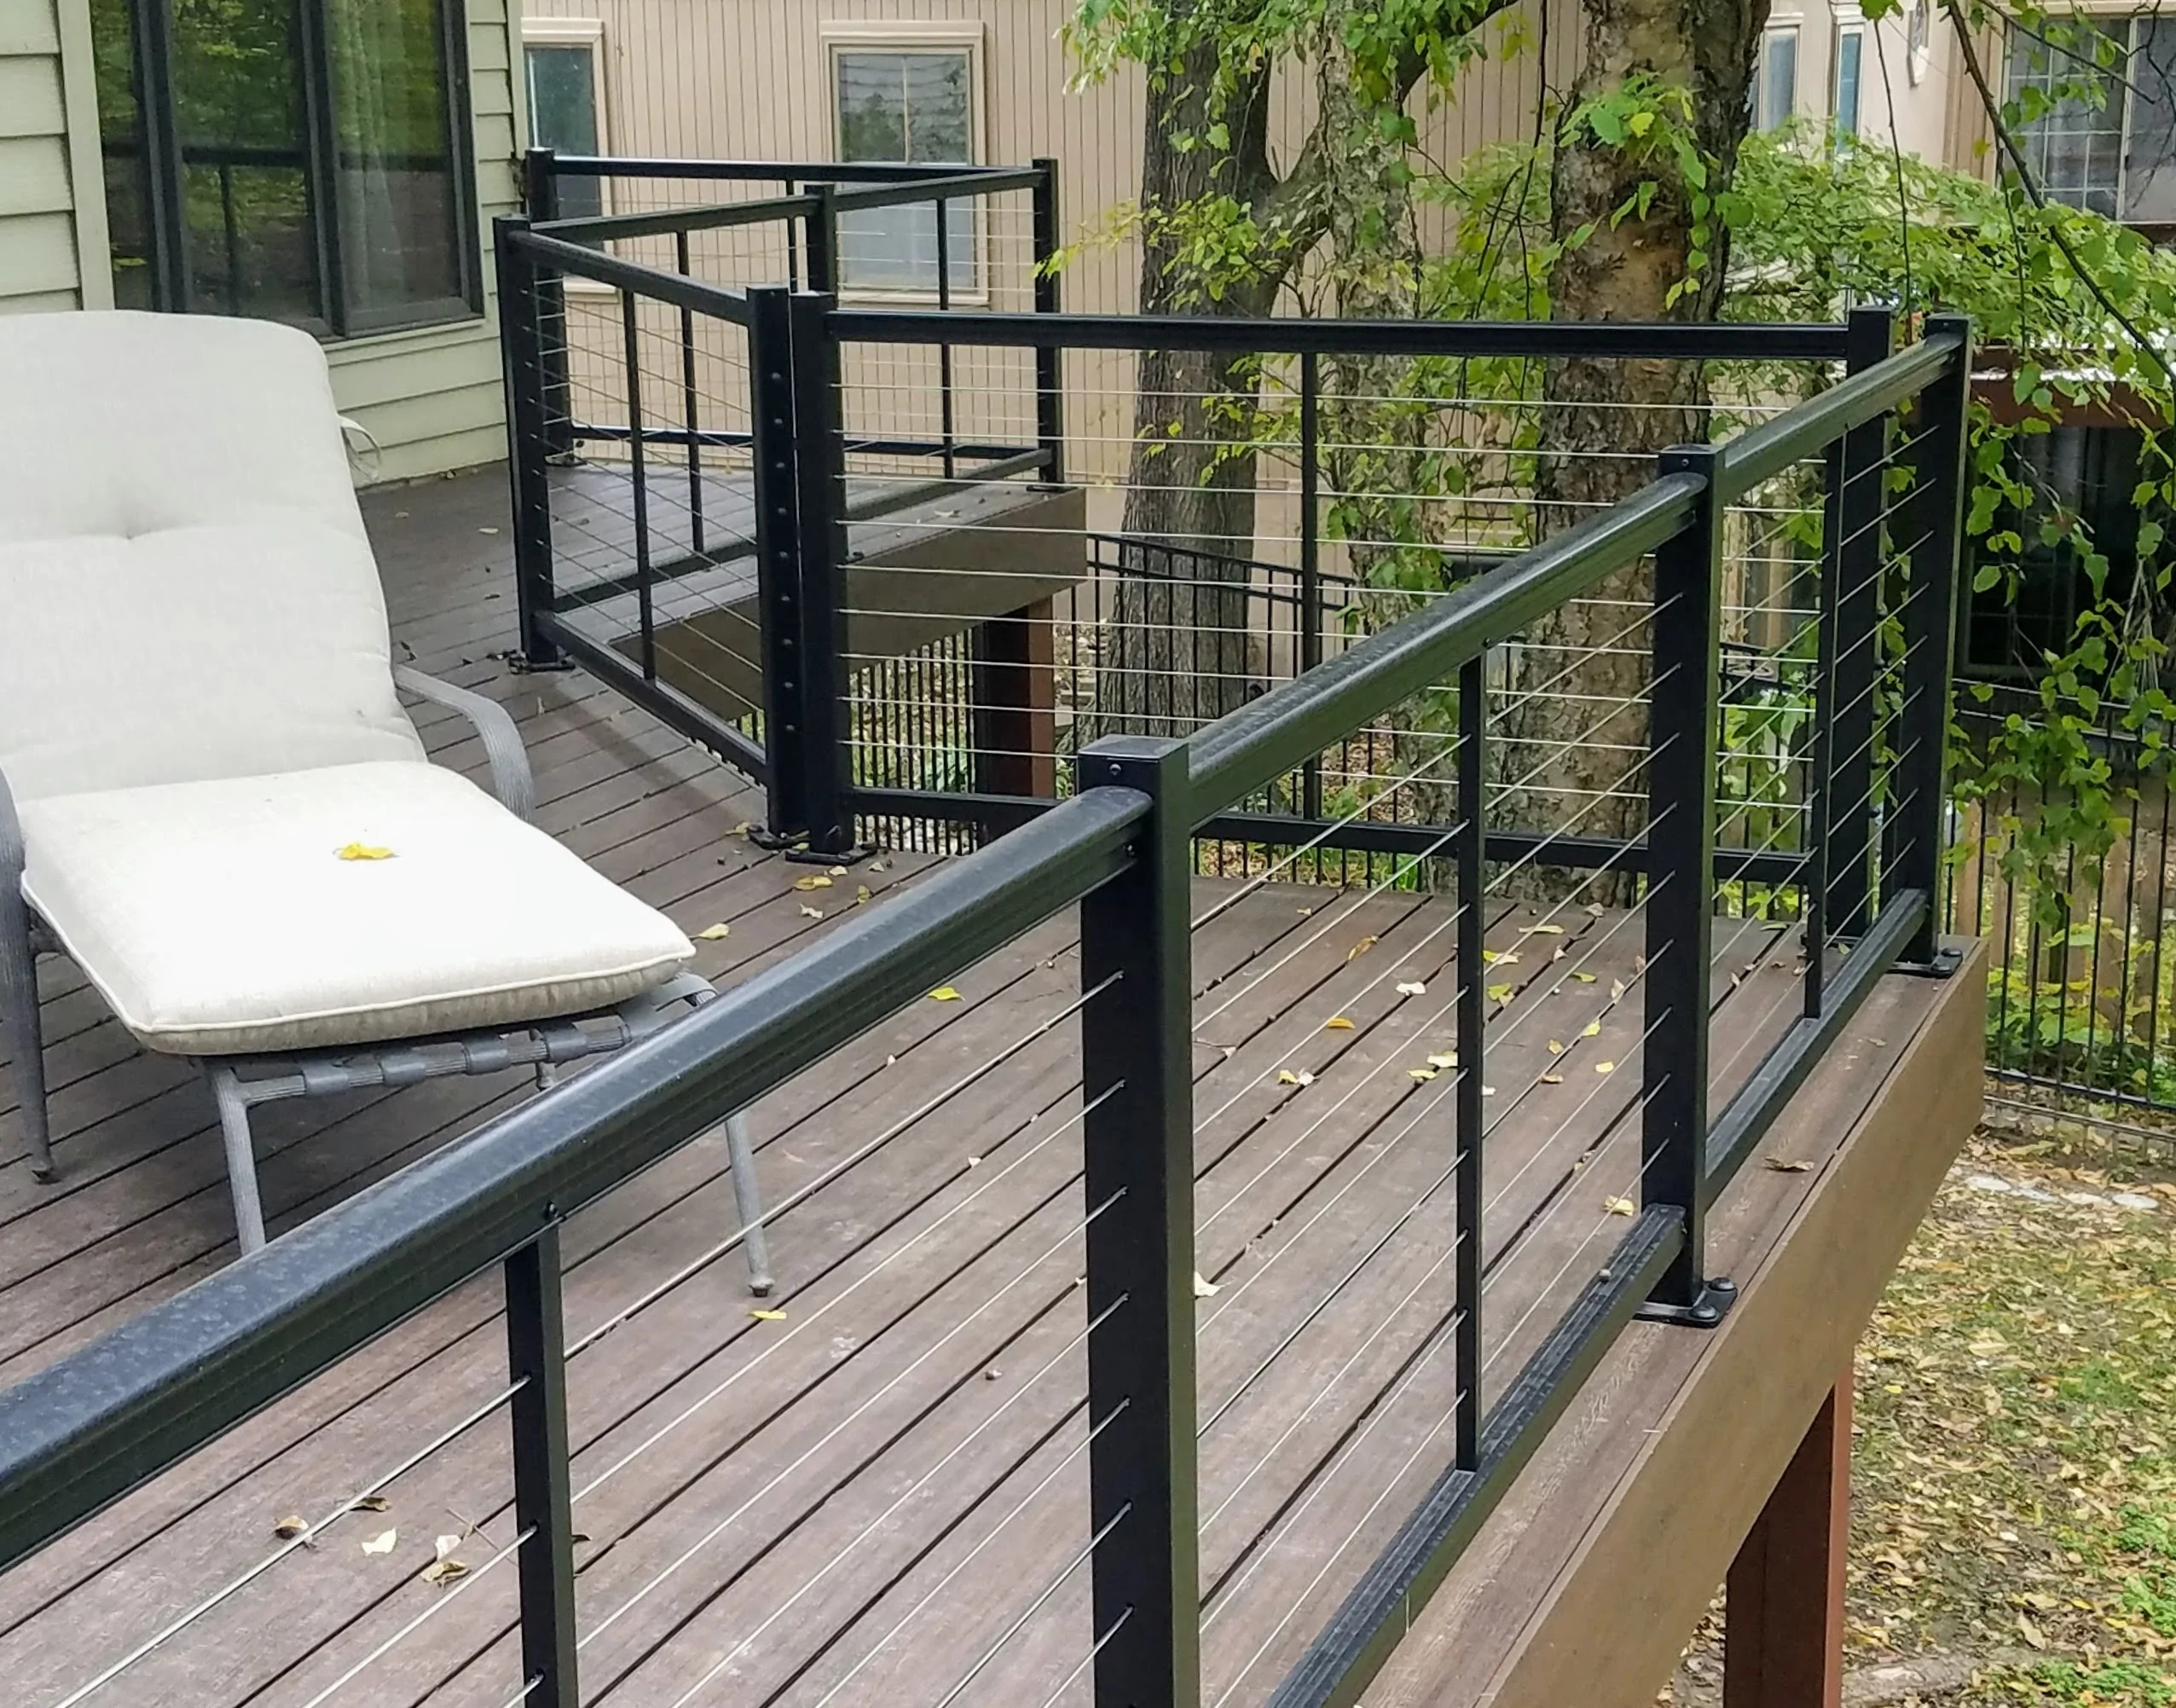 Cable Railing Systems Best Cable Rail Collections – Deck Rail   Metal Handrails For Decks   Patio   Decking   Fence   Pool Deck   Vertical Metal